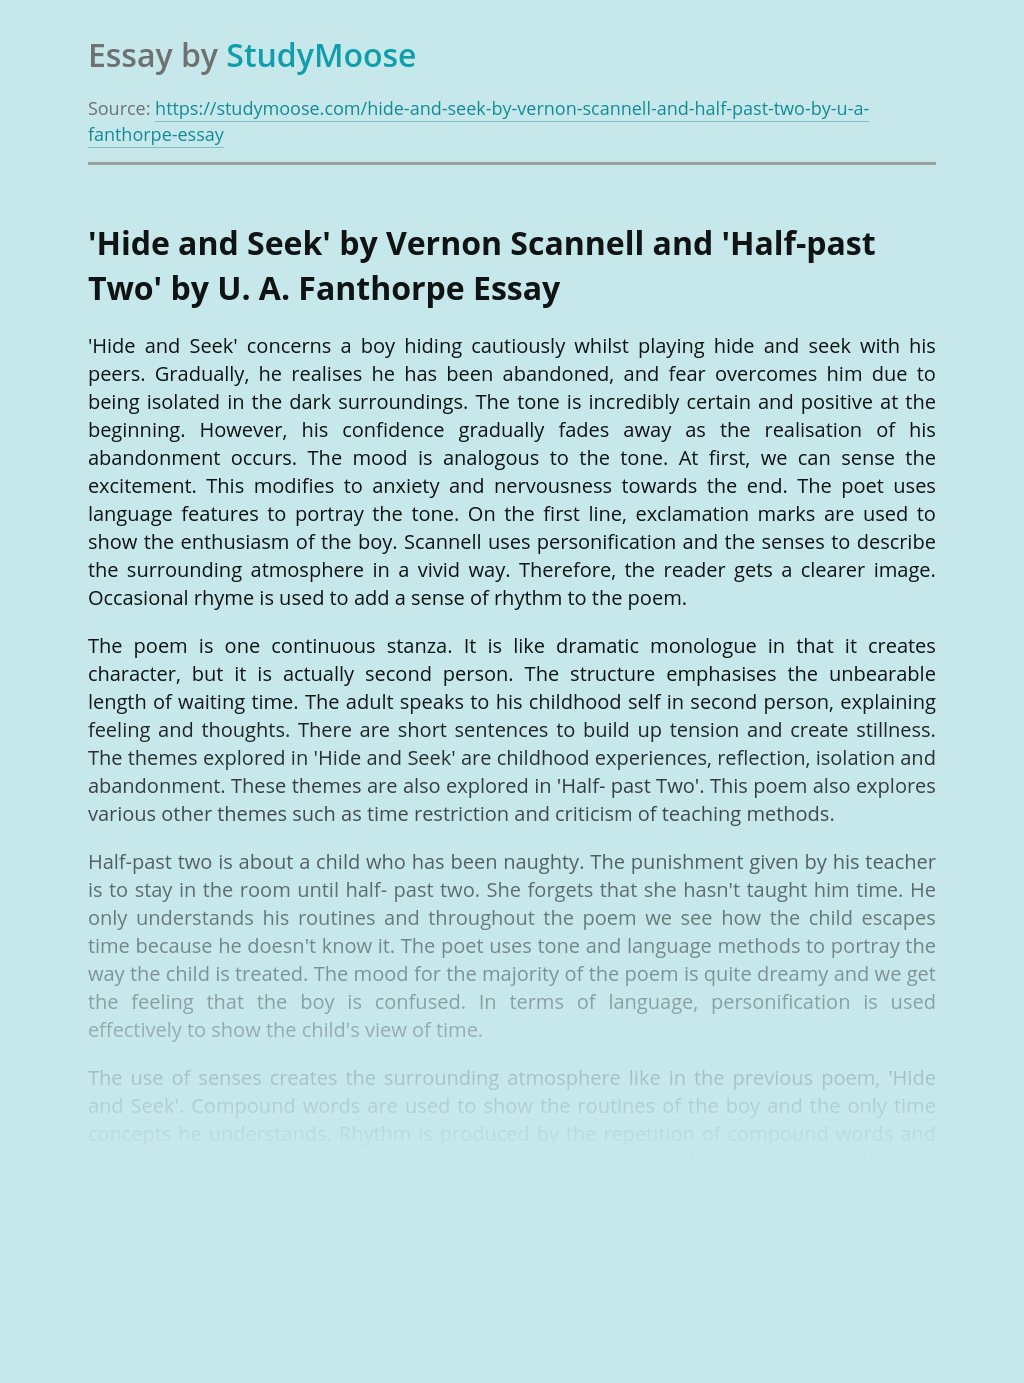 'Hide and Seek' by Vernon Scannell and 'Half-past Two' by U. A. Fanthorpe